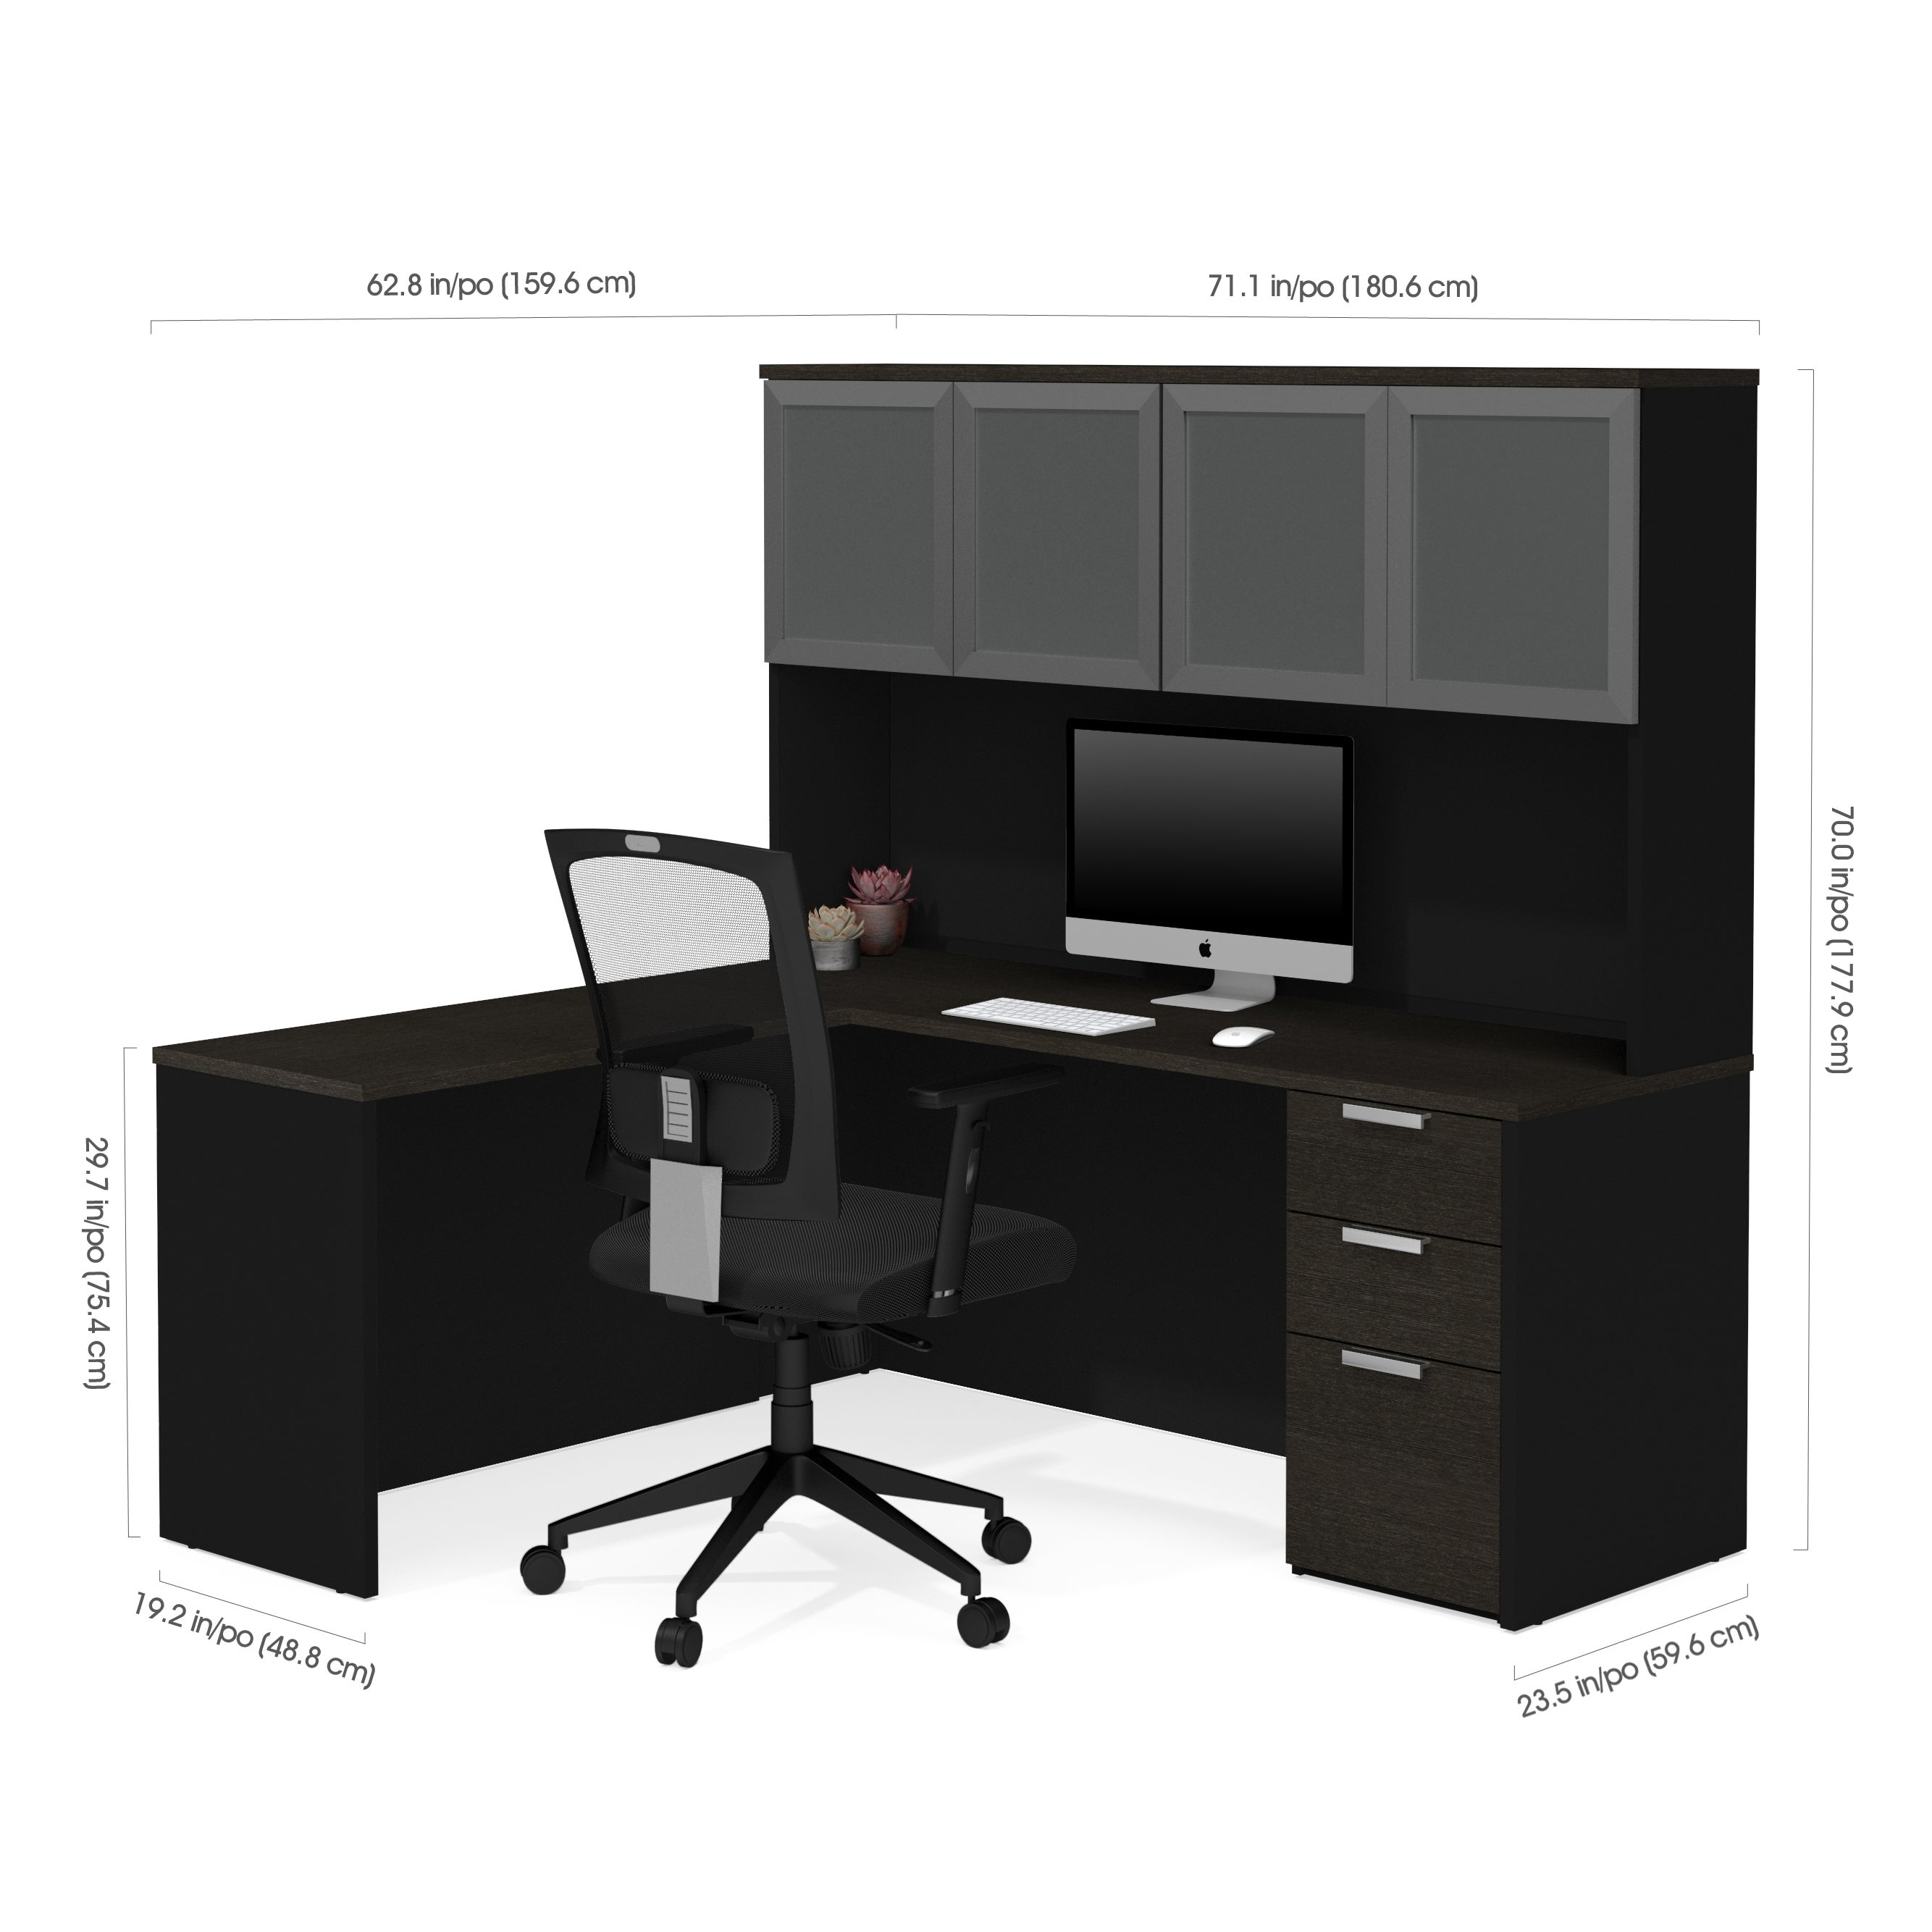 curved products drawer hutch by corner desk shape shaped furniture l and with pedestal half desks